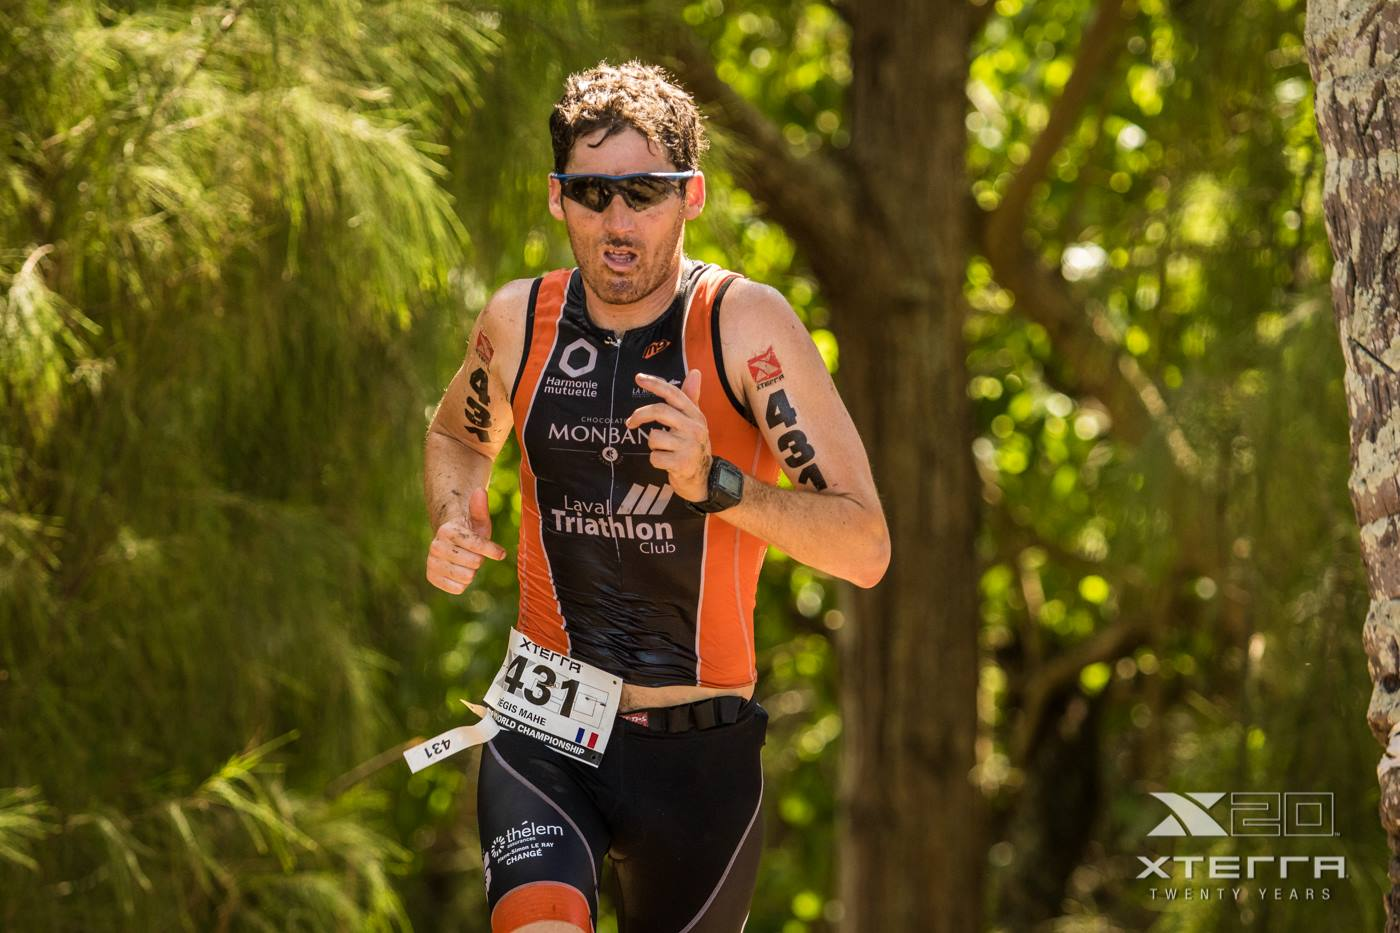 XTERRA_WORLD_CHAMPIONSHIP_2015_00072